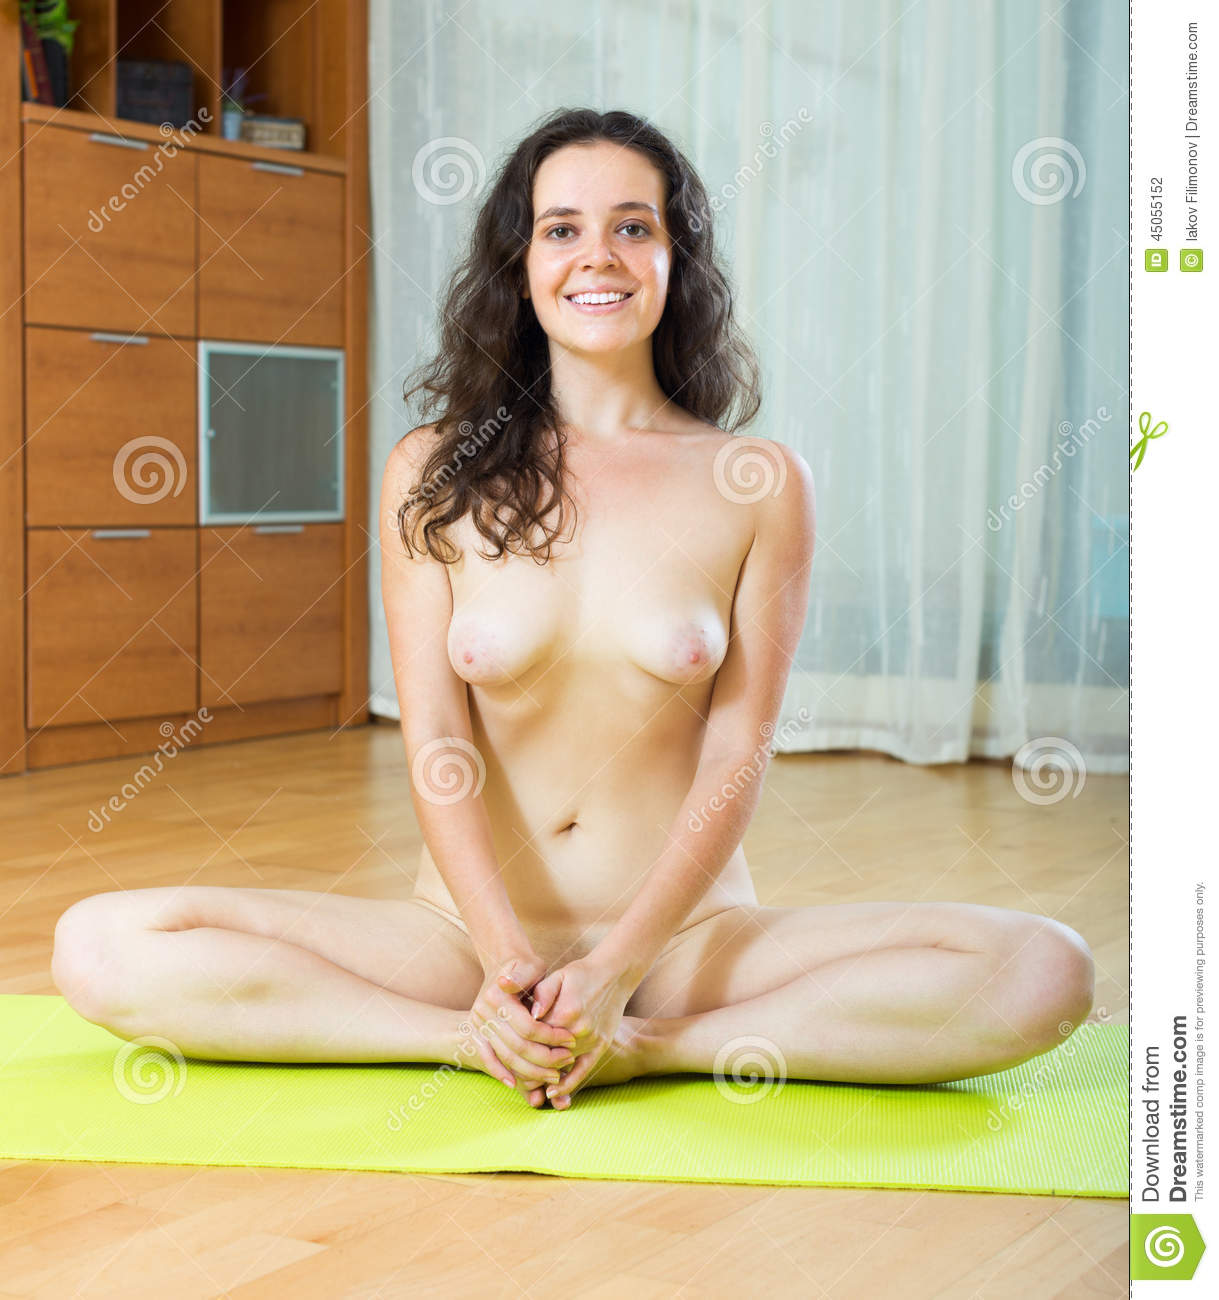 All became sexy naked girls doing yoga something is